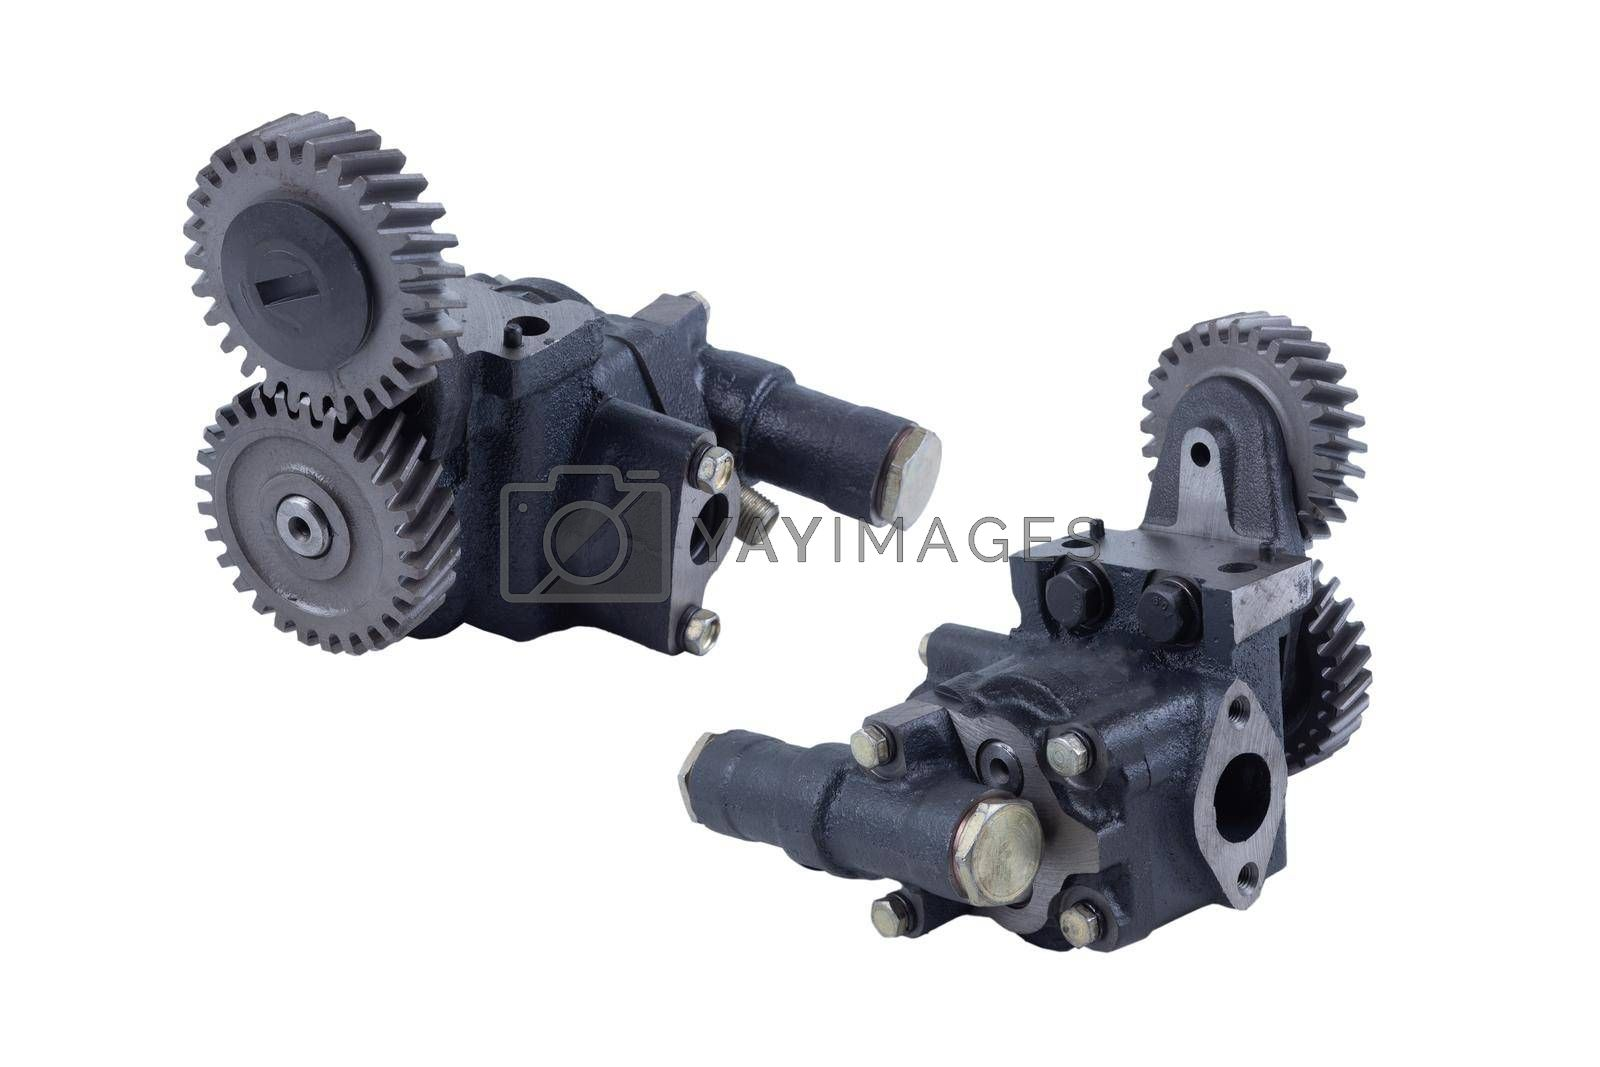 Car engine oil pump of Russian trucks isolated on white background. front and rear view